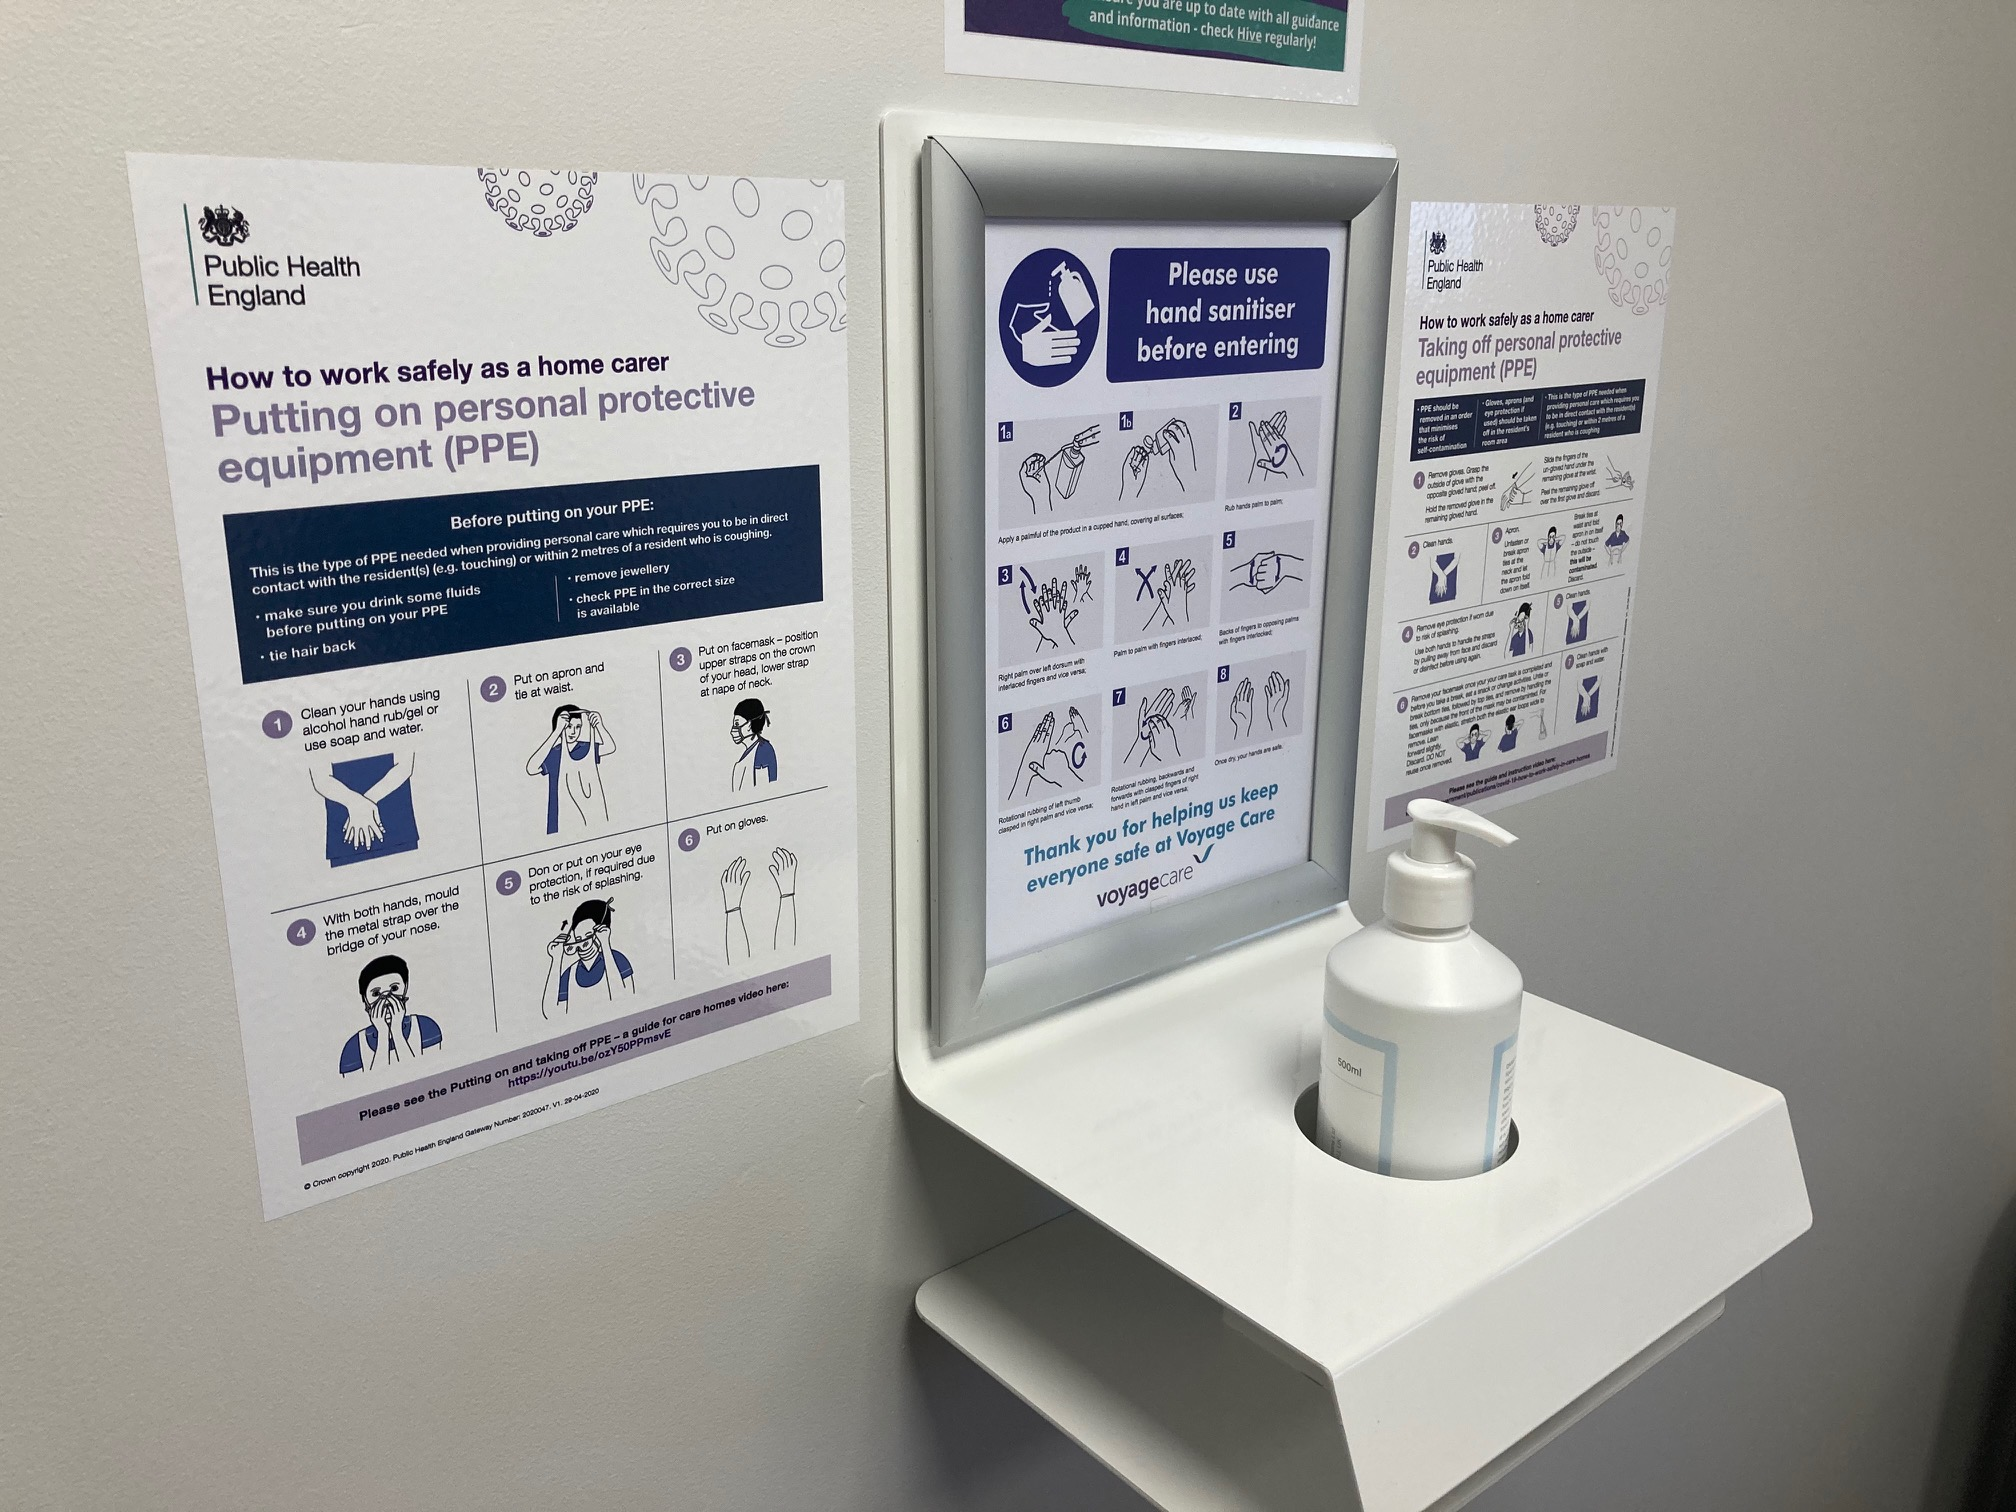 Wall Mounted Hand Sanitiser Unit & Wipe Clean Posters